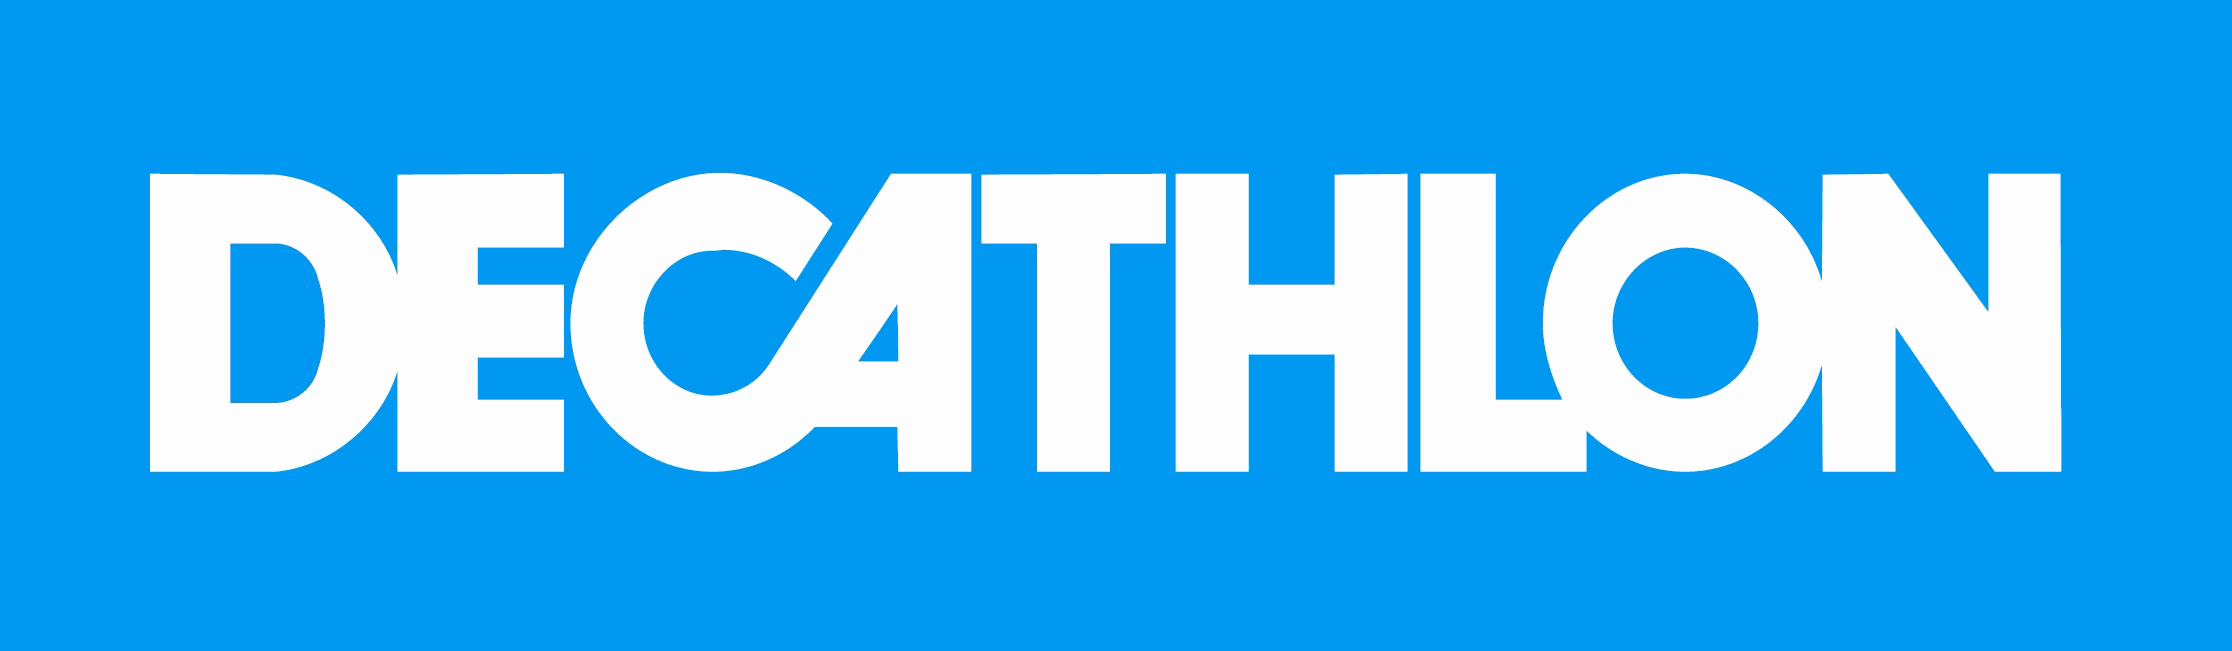 Decathlon partner